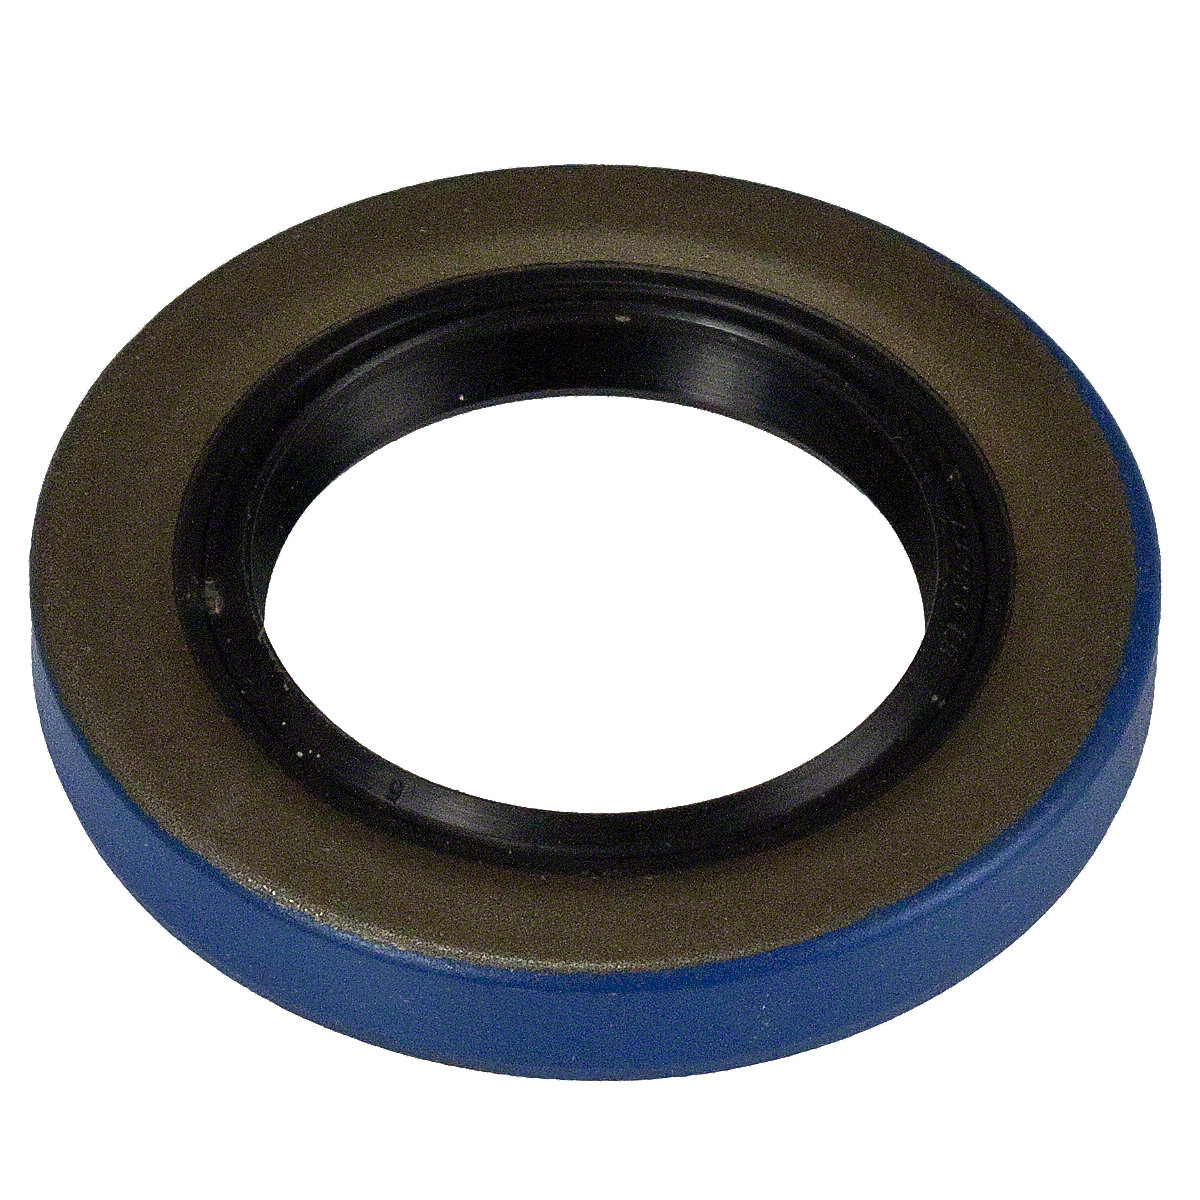 PTO Shaft Seal For Oliver Super 55, 55, 550. Replaces Oliver PN#: 1e1582.